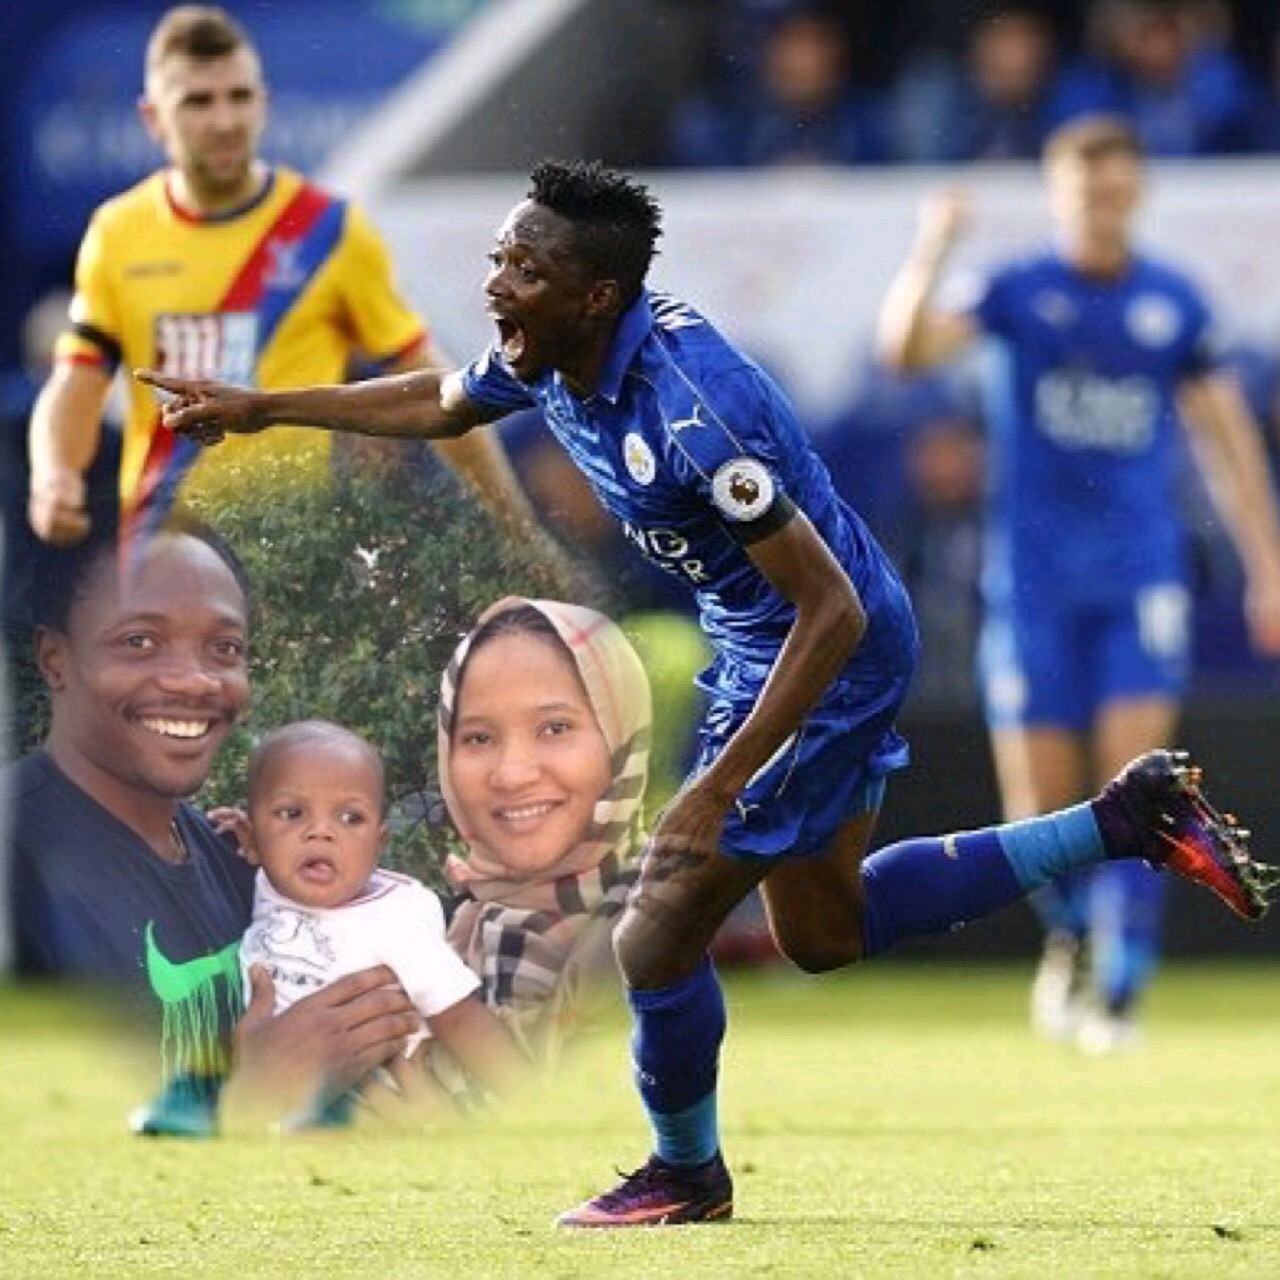 Delighted Musa Dedicates First Leicester Goal To Wife